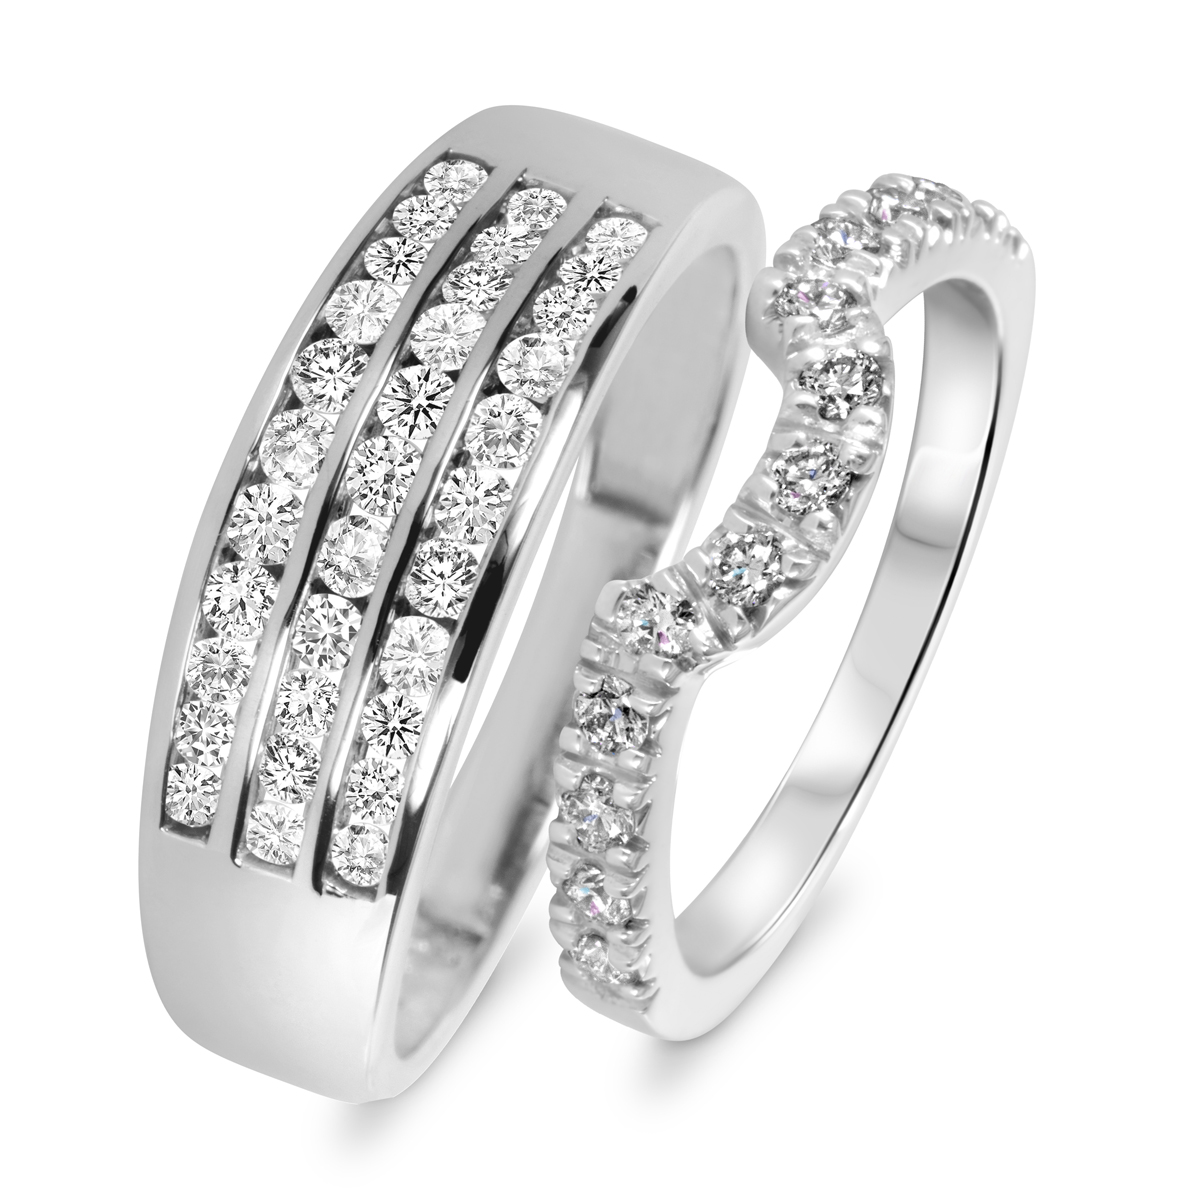 1 Carat T.W. Round Cut Diamond His And Hers Wedding Band Set 10K White Gold-